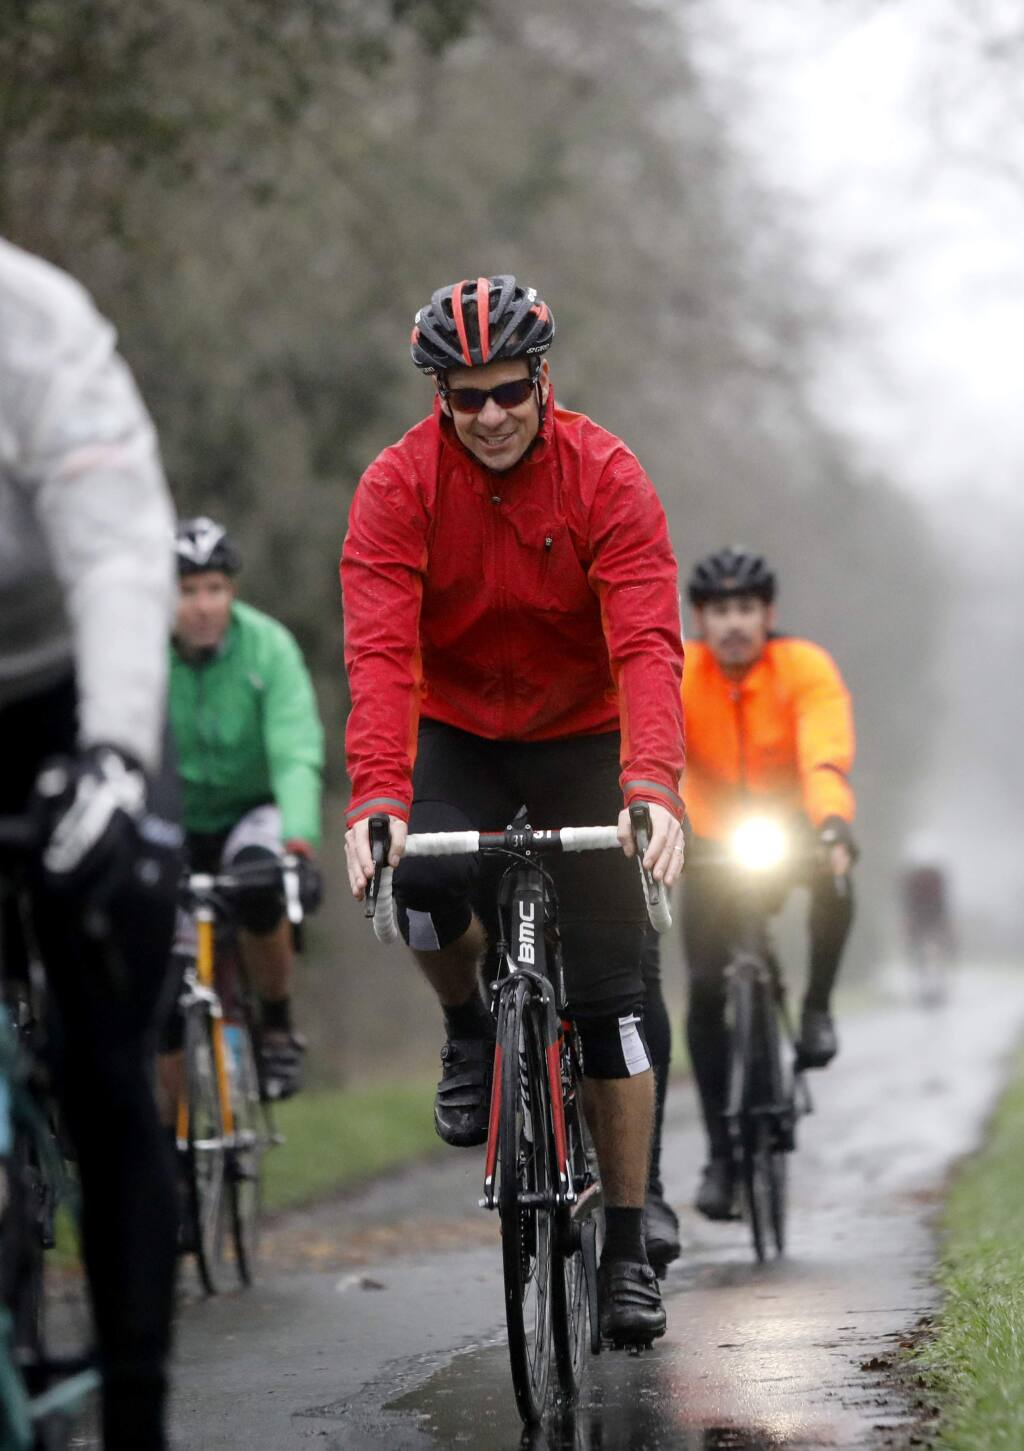 Andrew Hampsten, a retired professional road bicycle racer, rides with cyclists on the Santa Rosa Creek Trail in Santa Rosa, on Thursday, January 18, 2018. (BETH SCHLANKER/ The Press Democrat)